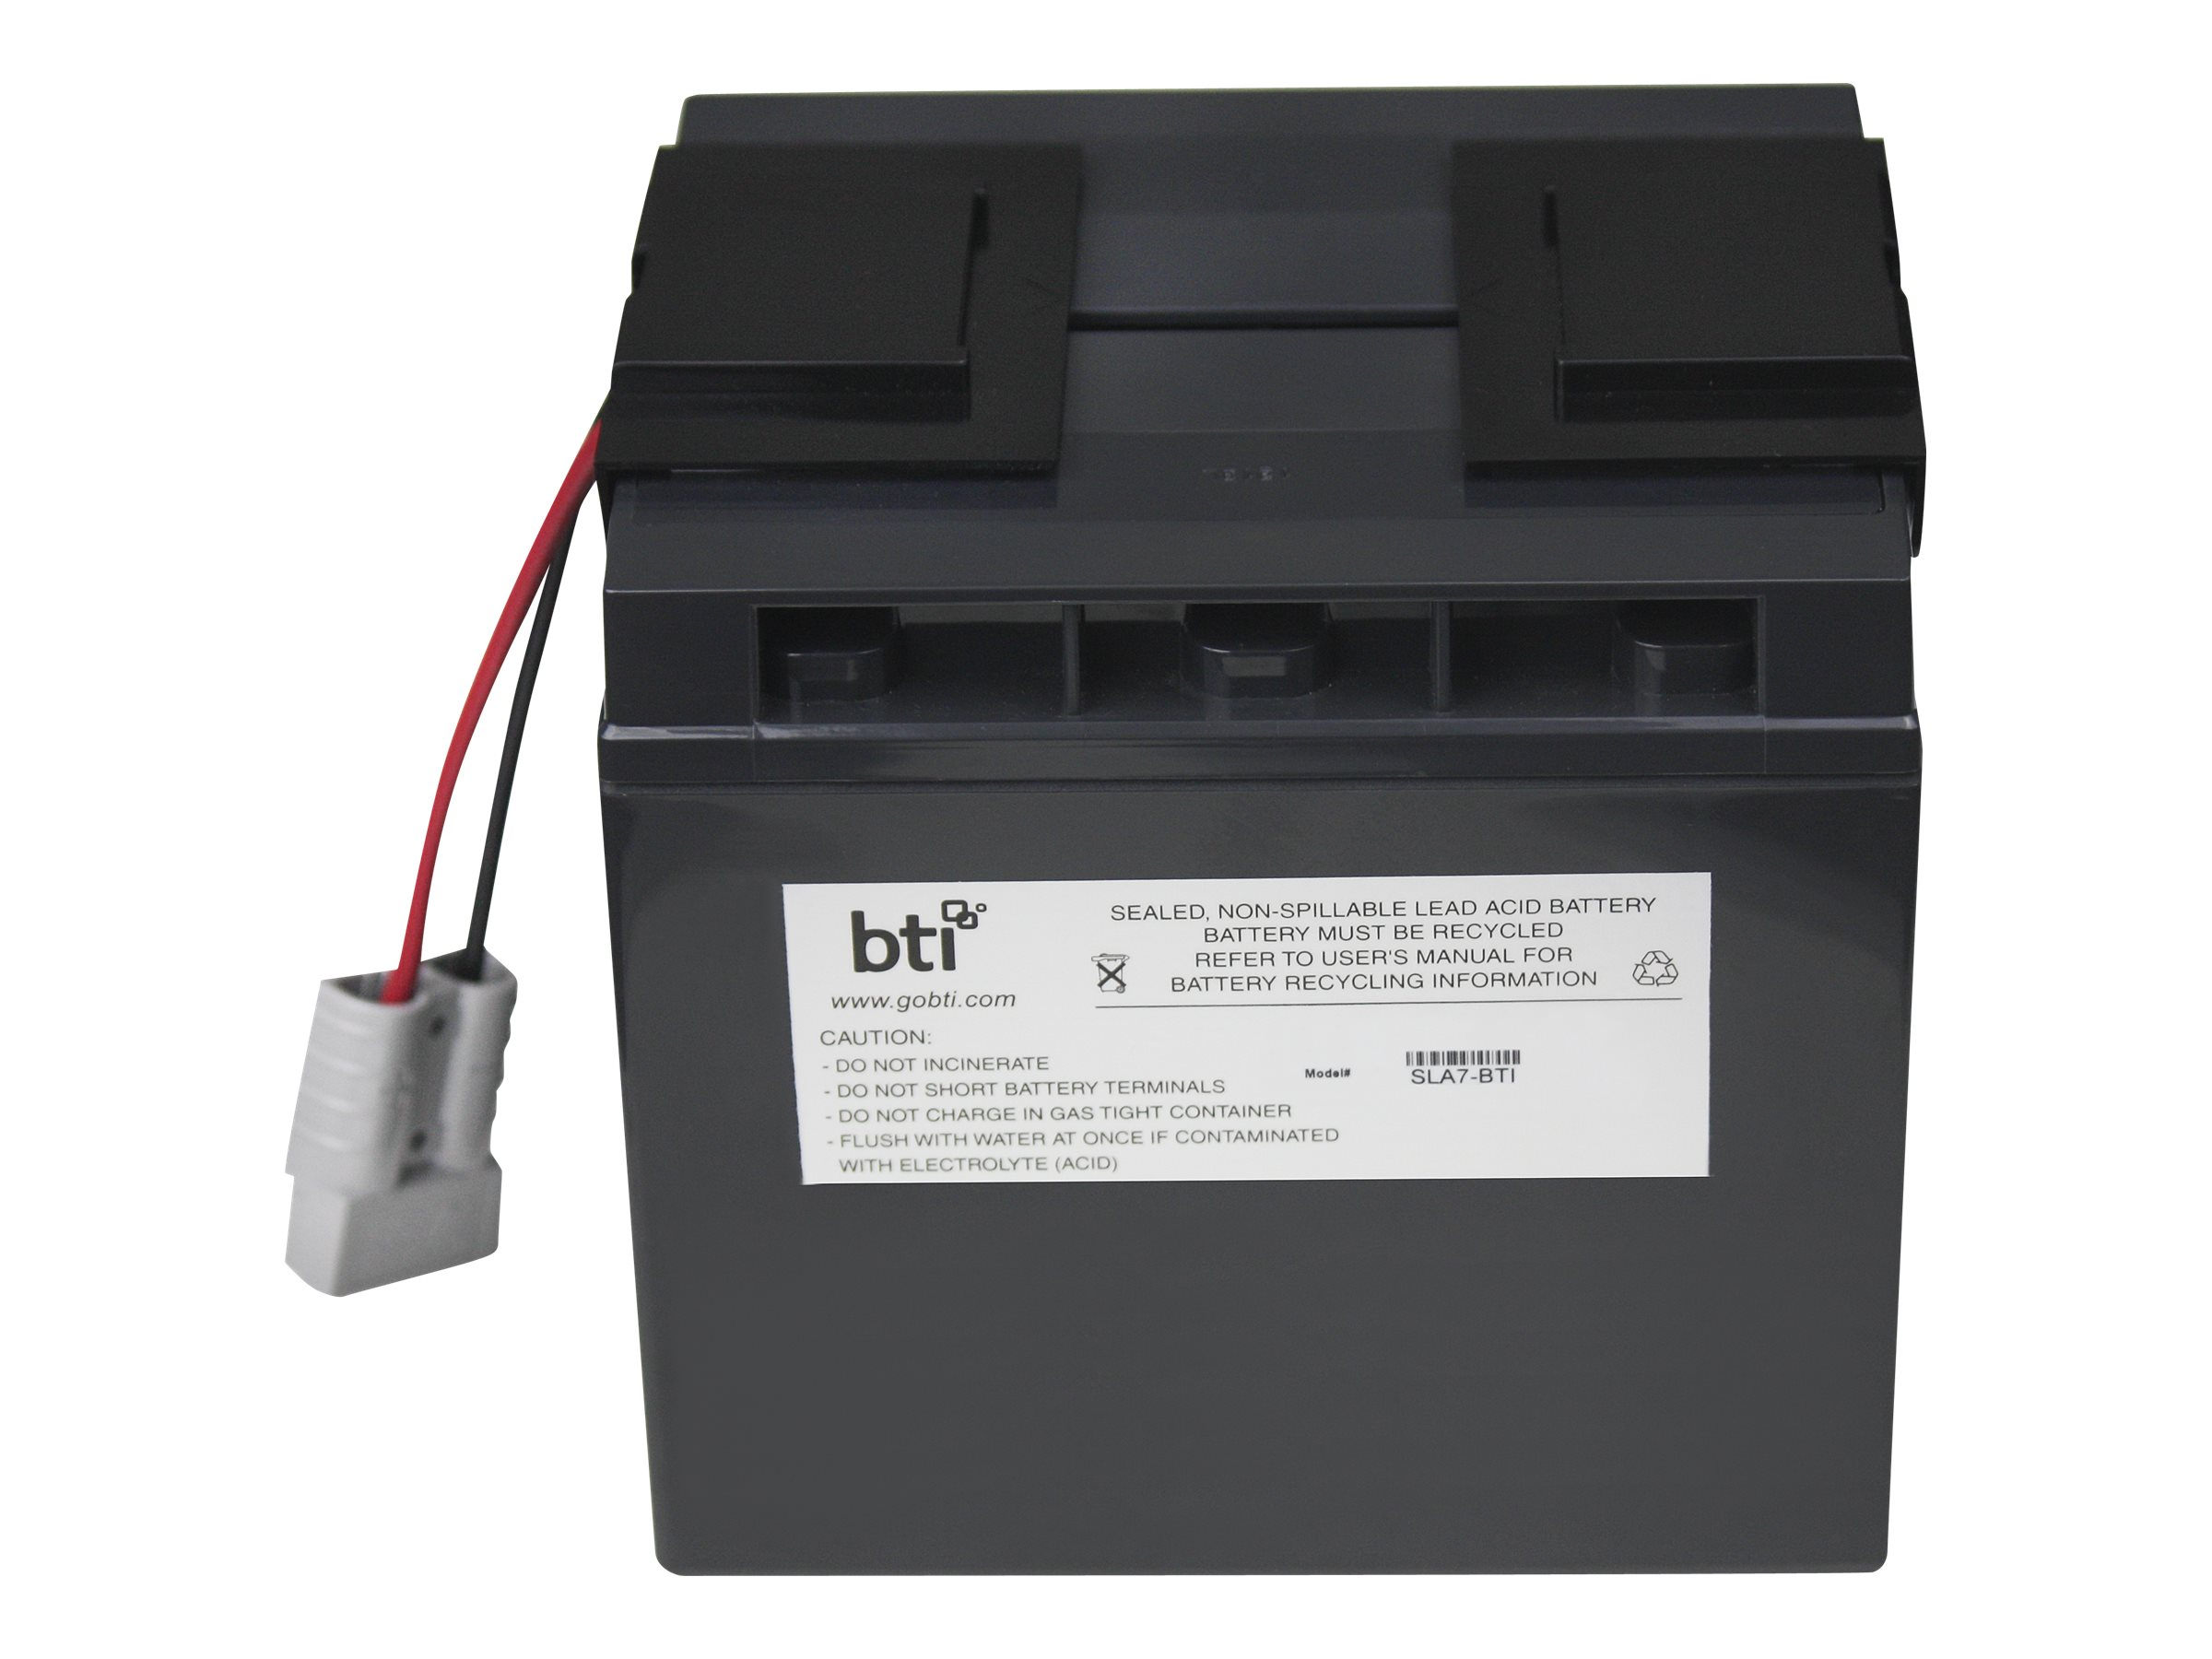 BTI Replacement Battery, RBC7, for APC SU700XL, SU1000XL, BP1400, SU1400 Models